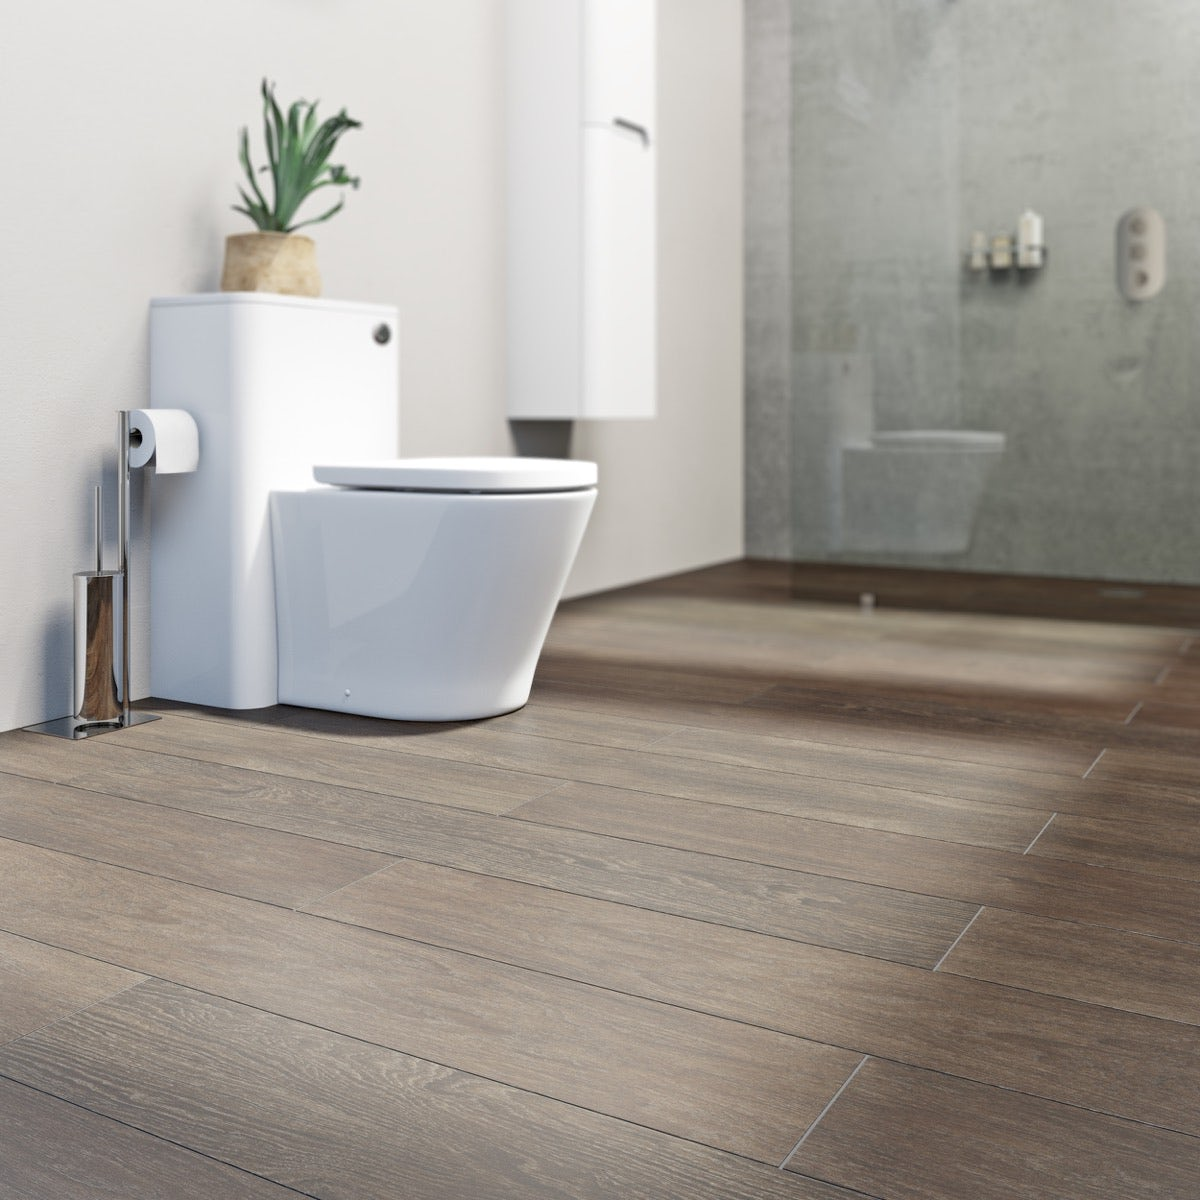 Krono Xonic Columbus waterproof vinyl flooring